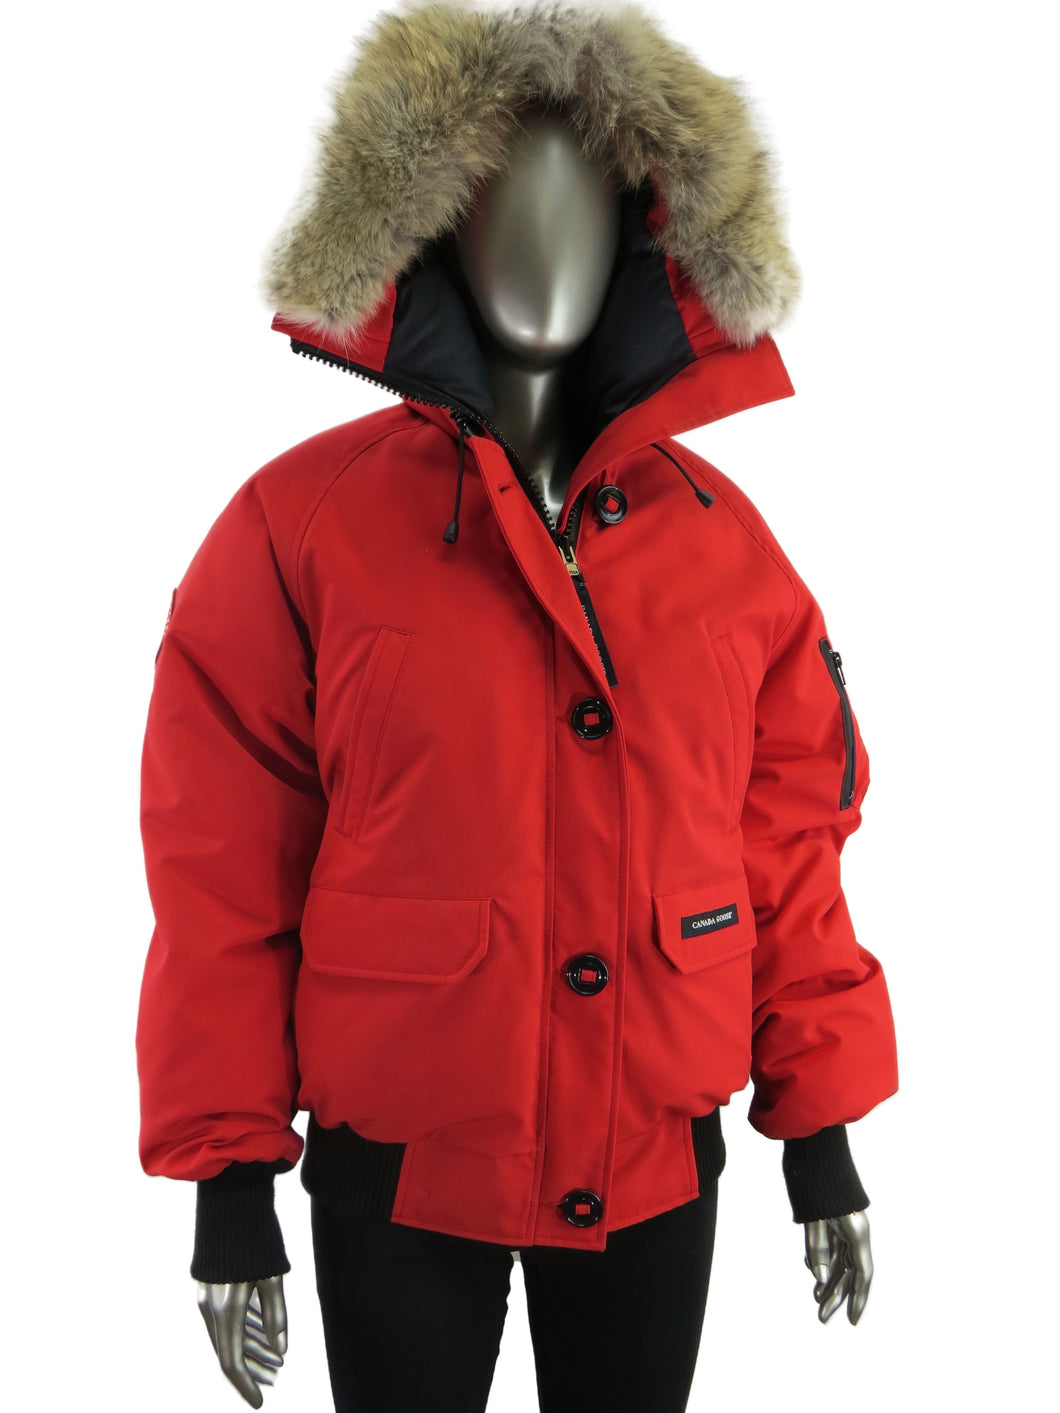 Canada Goose | 7950L | Chilliwack | Red